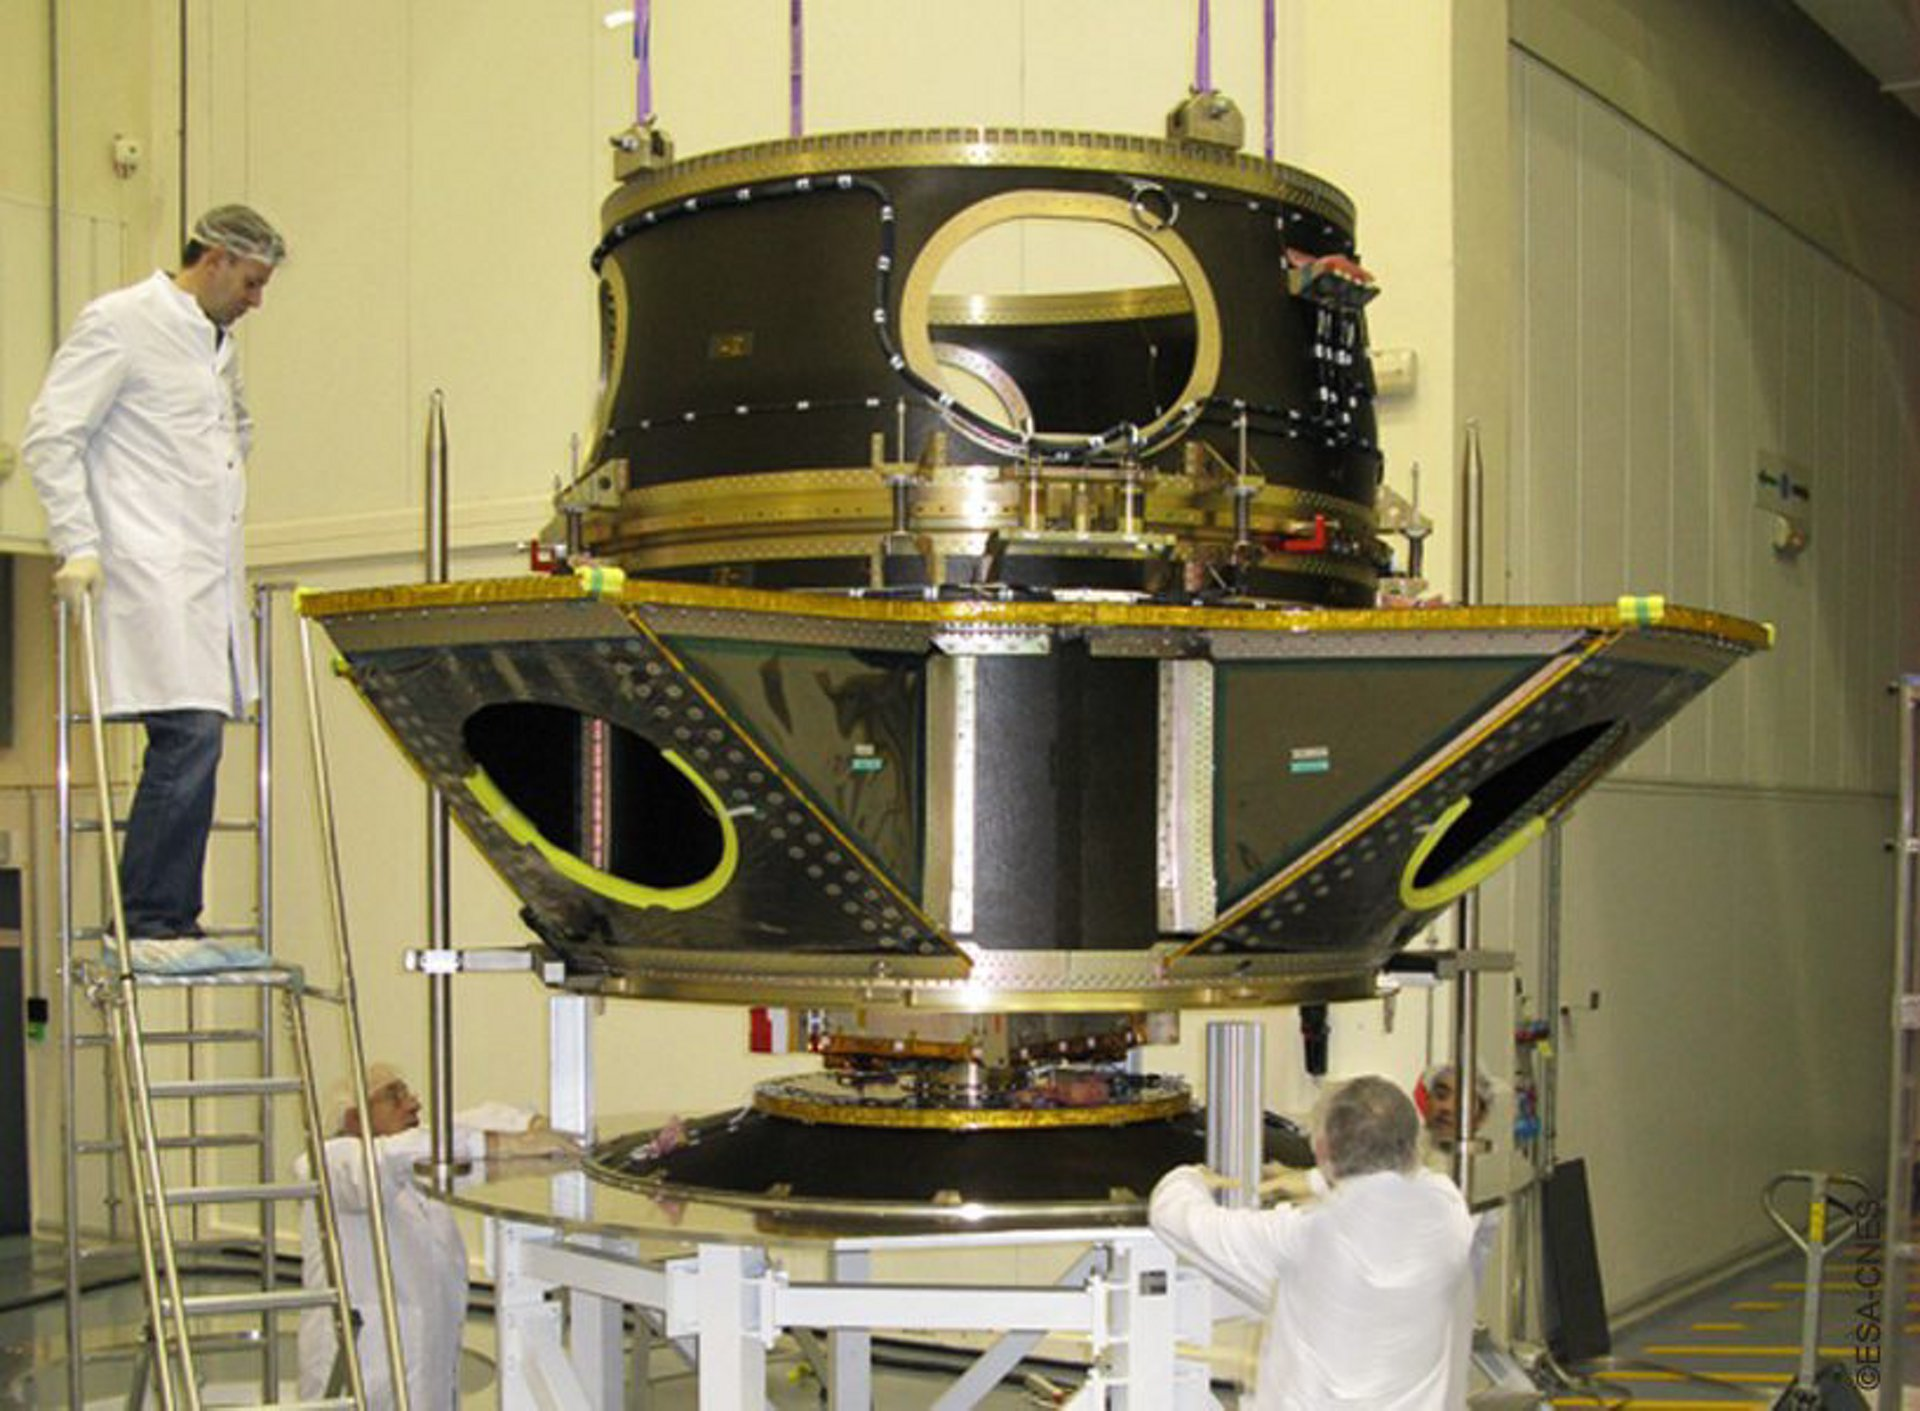 Integration of the multi-payload carrying structure for the launch that orbited Chile's first high-resolution operational Earth observation satellite – the Airbus-produced SSOT – among other spacecraft